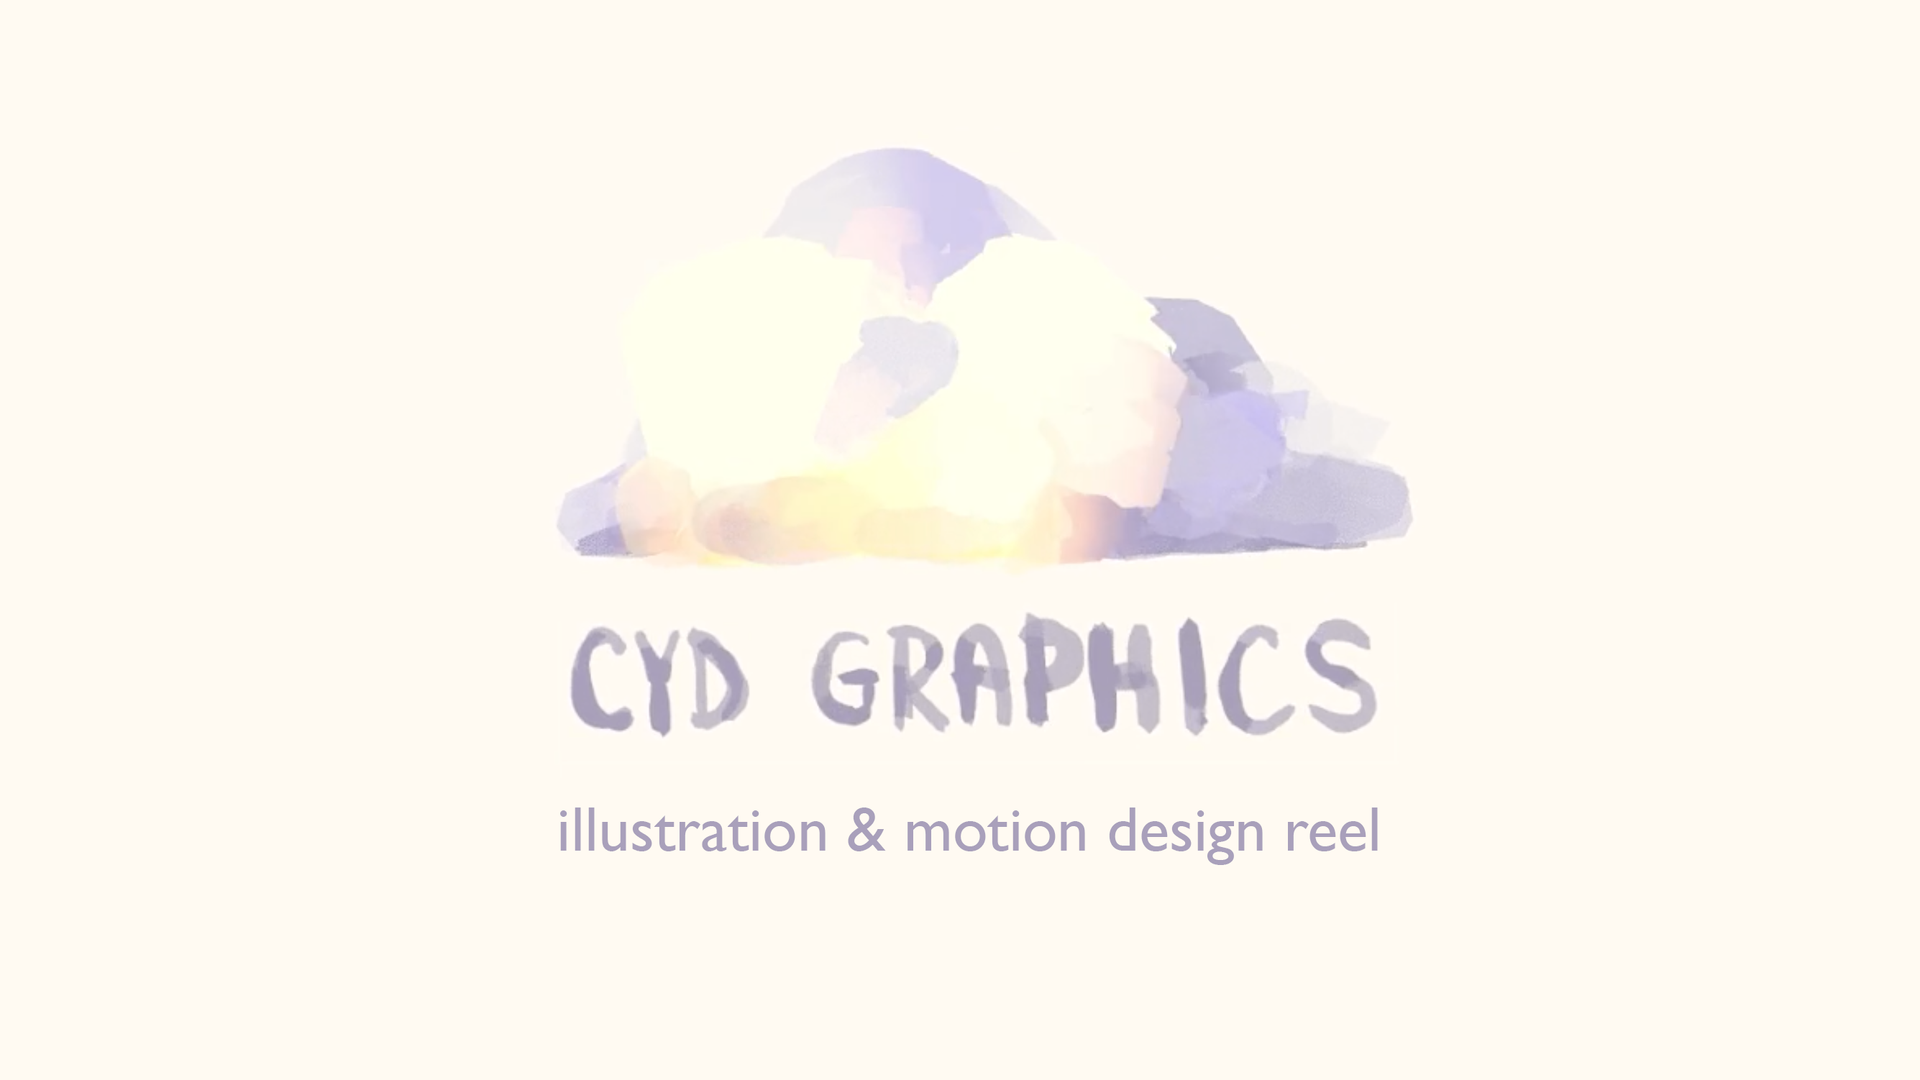 Cyd Graphics 2020 Reel